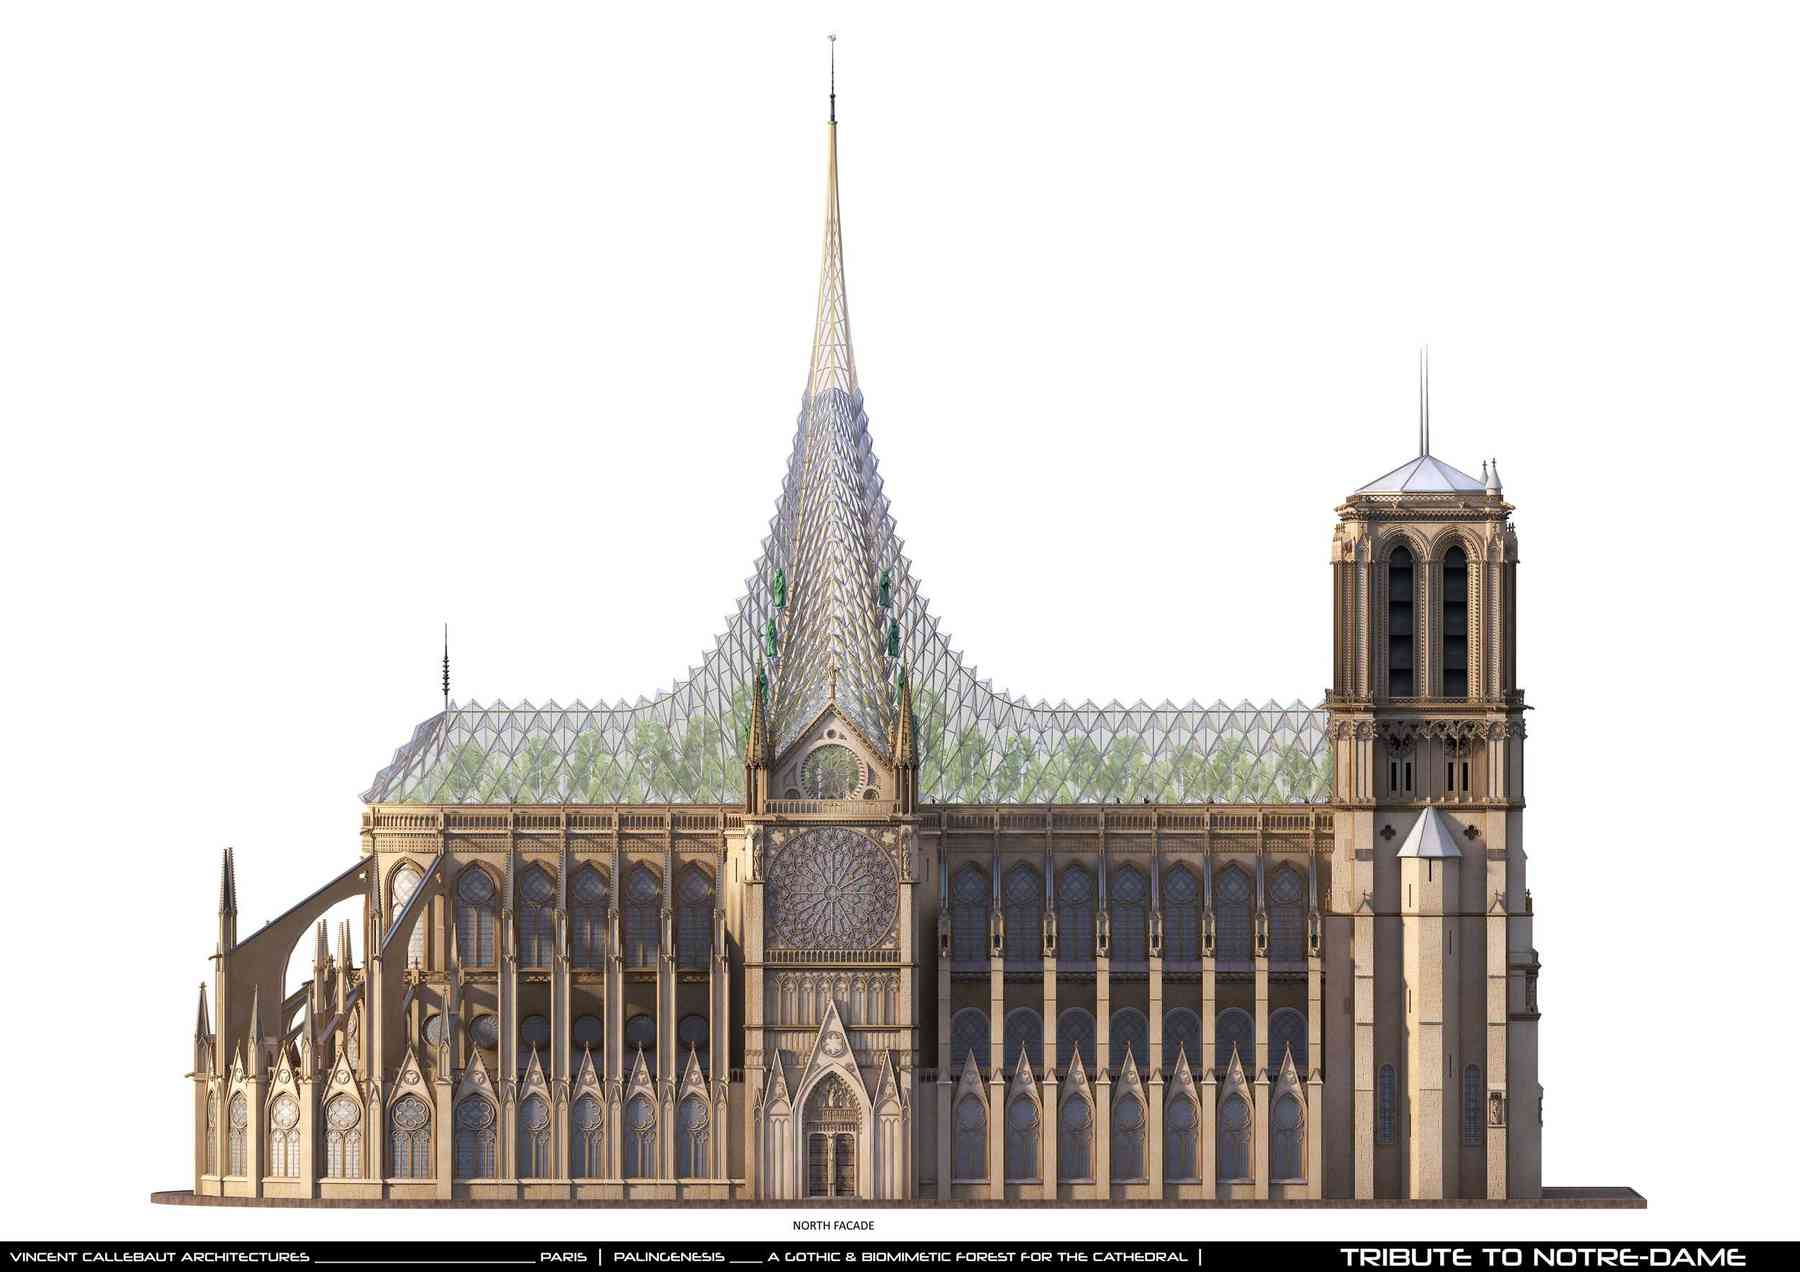 PALINGENESIS, VCA'S TRIBUTE TO NOTRE-DAME